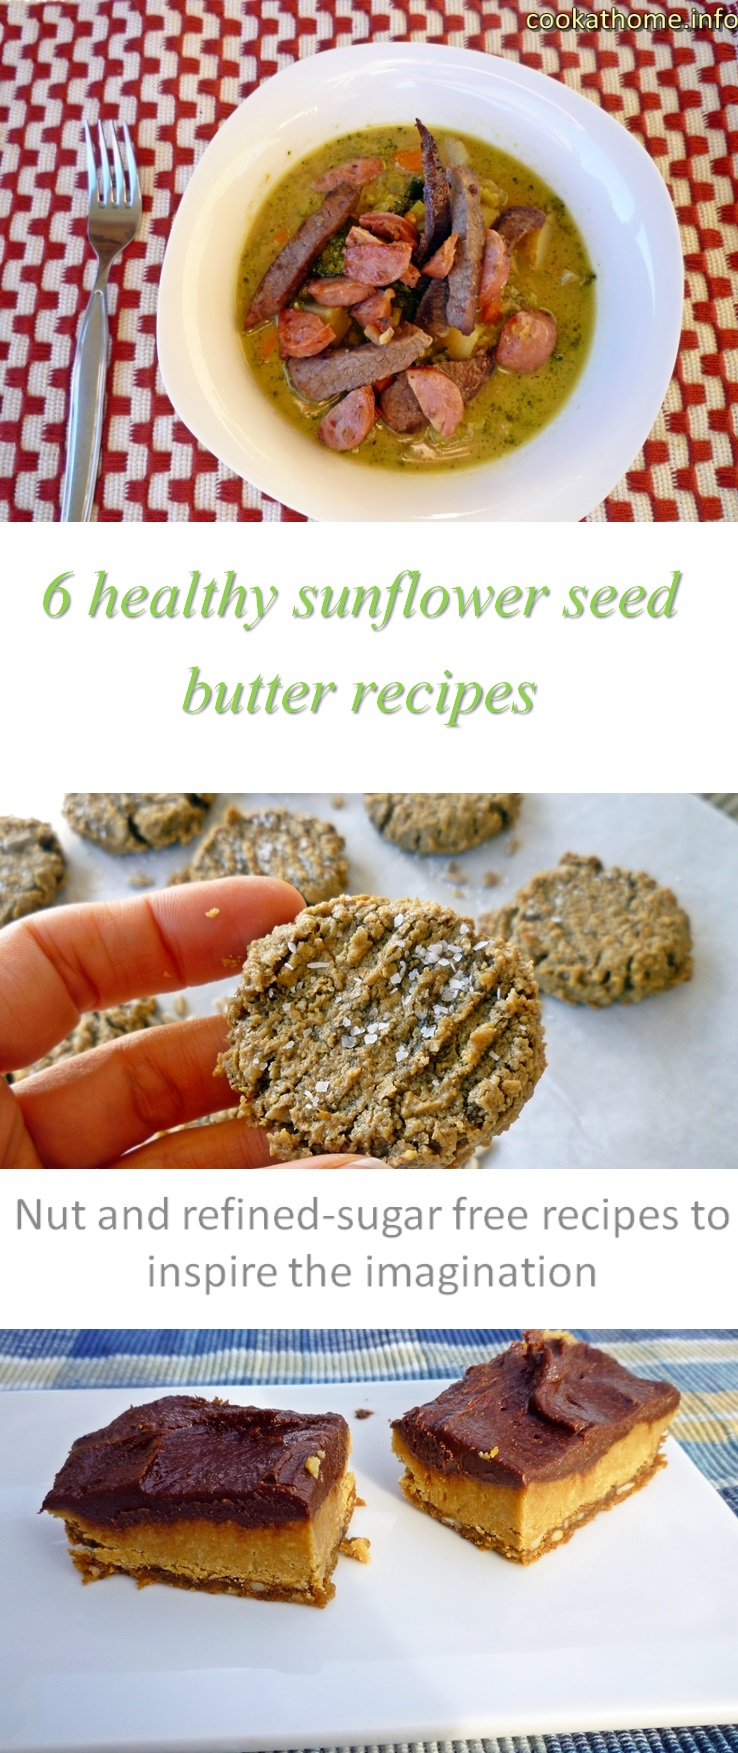 6 healthy sunflower seed butter recipes - all gluten and dairy-free, Paleo-friendly and without any refined sugar! #sunbutter